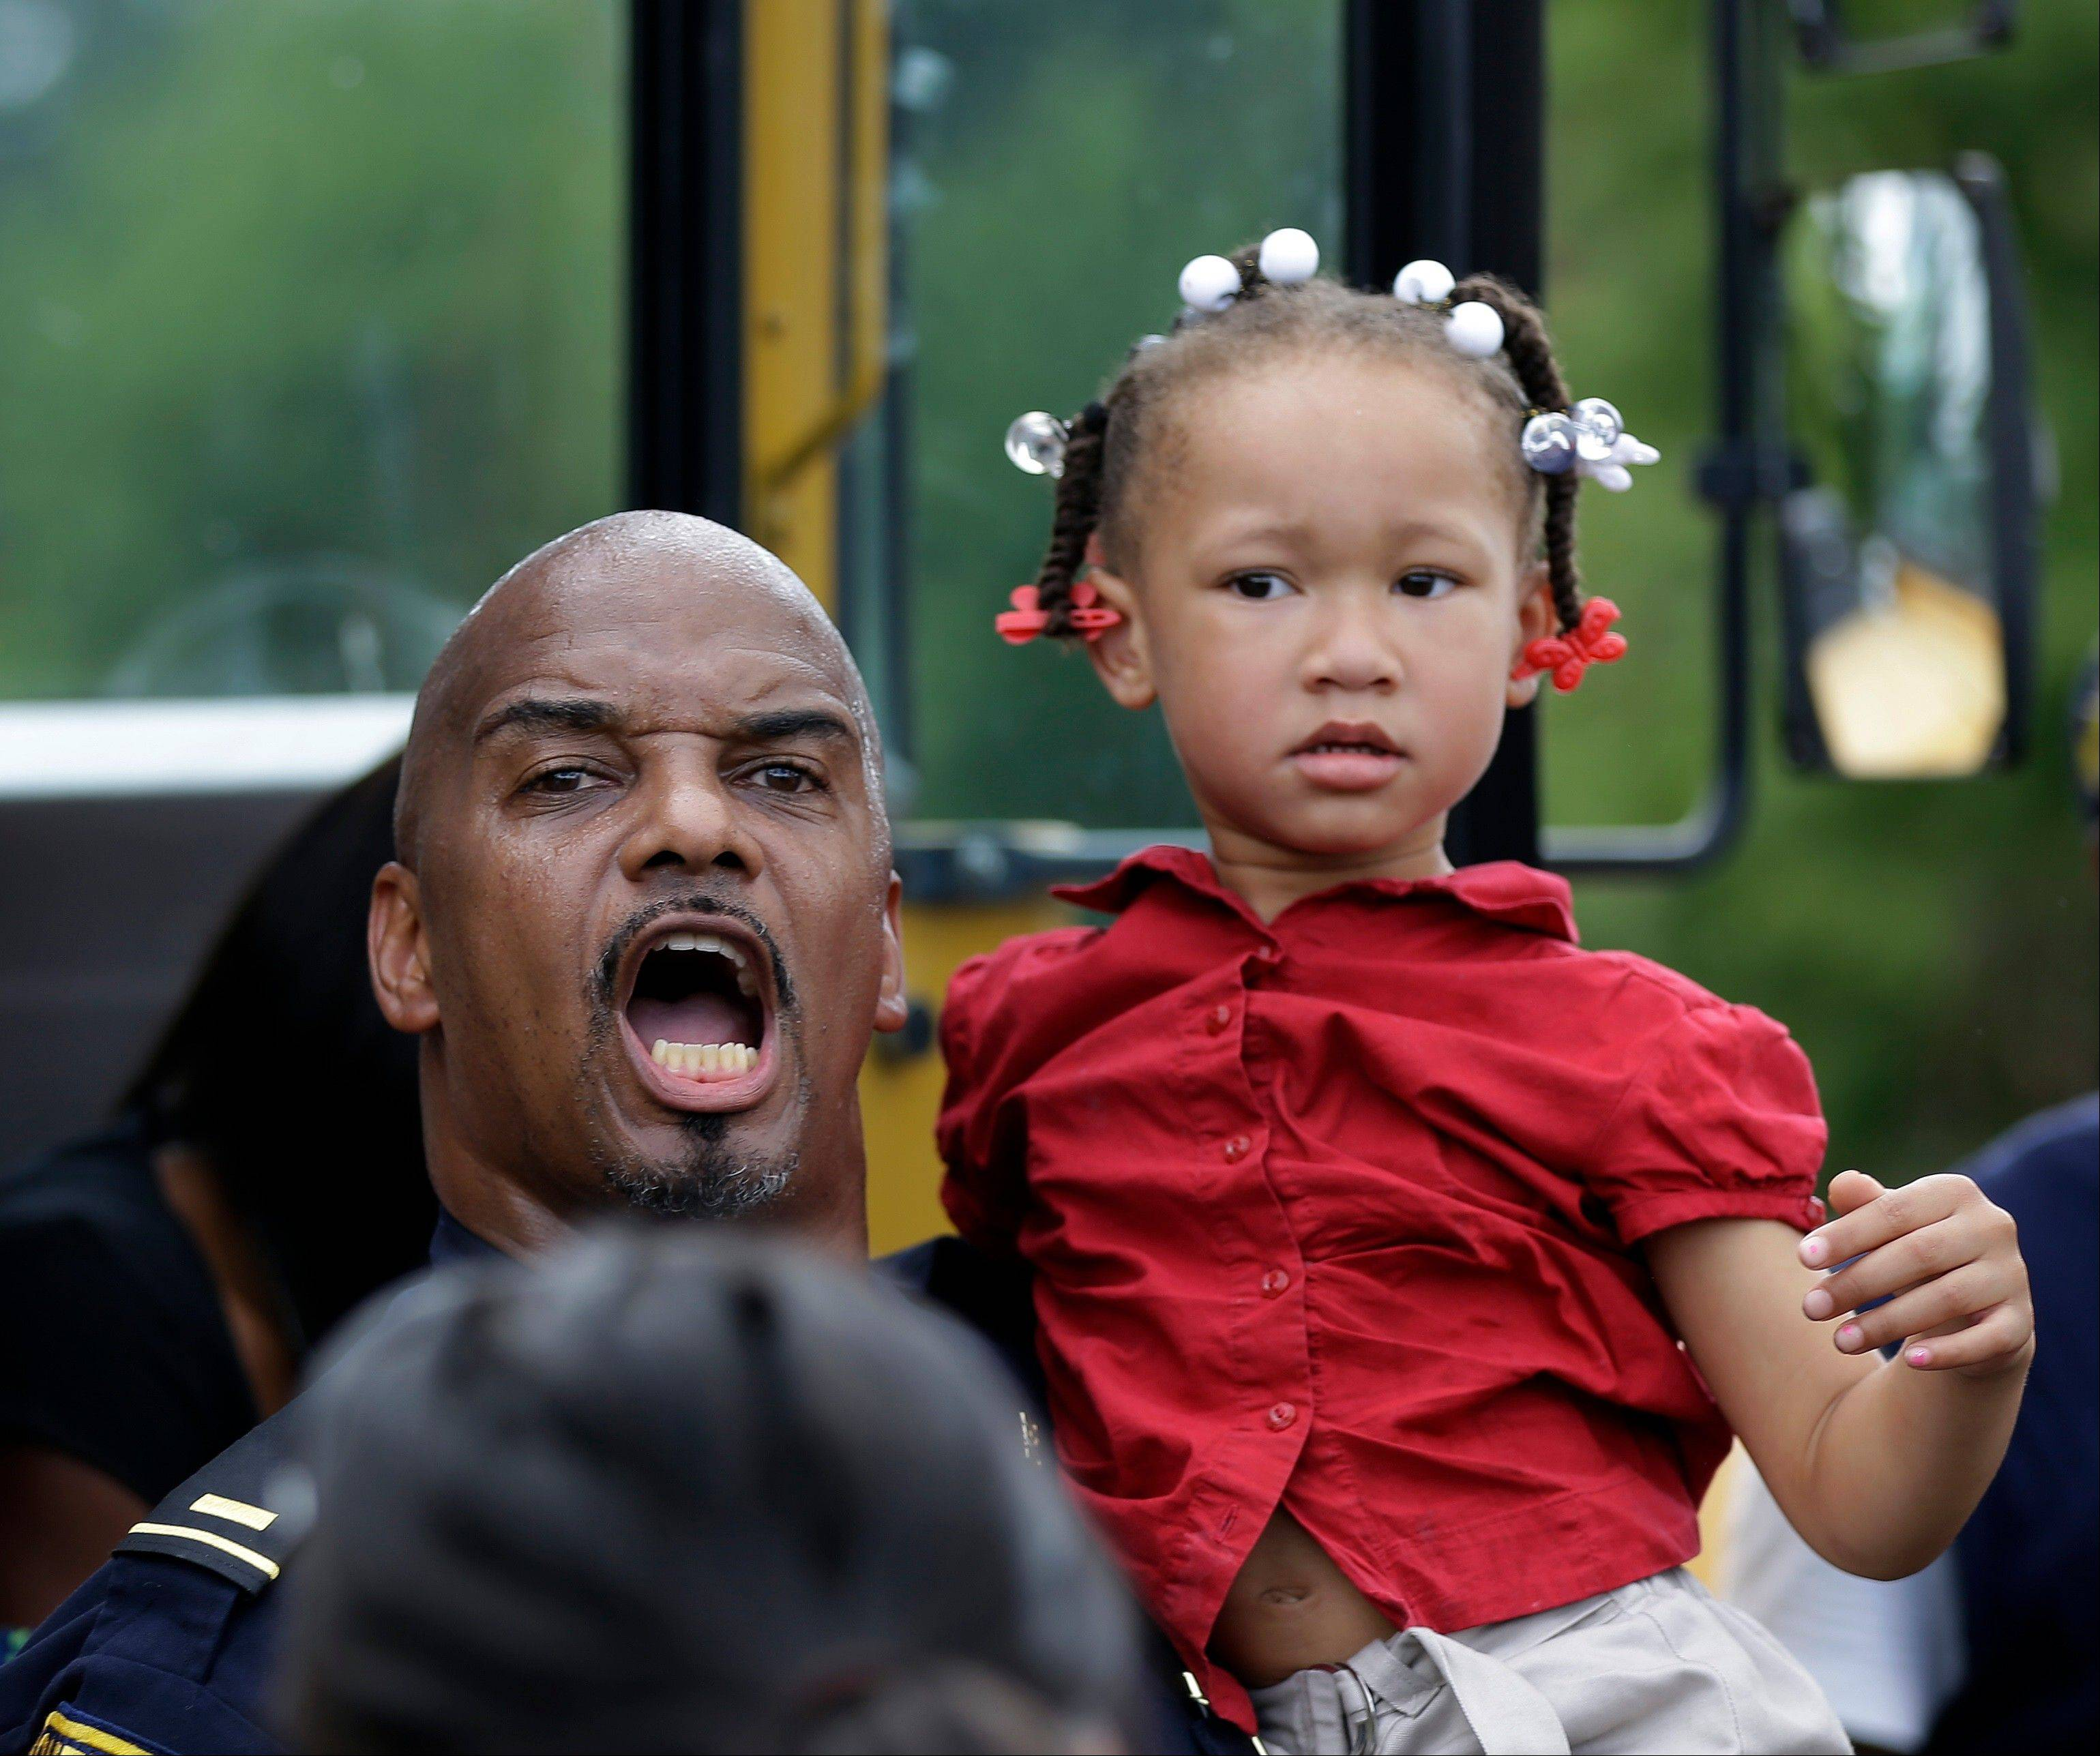 A police officer helps a child off a school bus carrying students after a shooting at Ronald E. McNair Discovery Learning Academy in Decatur, Ga., on Tuesday, Aug. 20, 2013. Superintendent Michael Thurmond says all students at the school east of Atlanta are accounted for and safe and that he is not aware of any injuries.